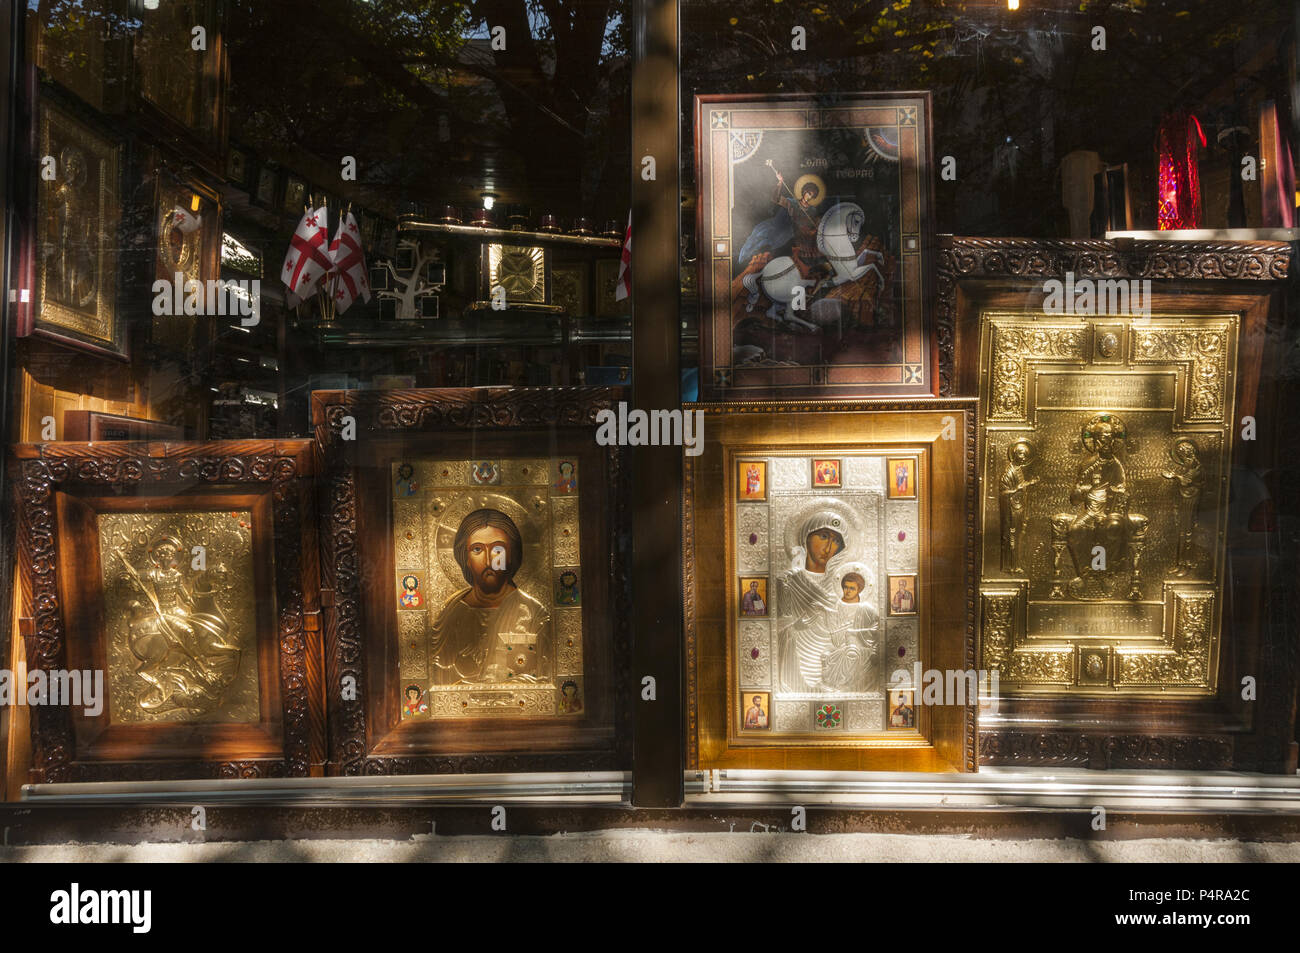 Georgia, Tbilisi, Old Town, religious paintings for sale